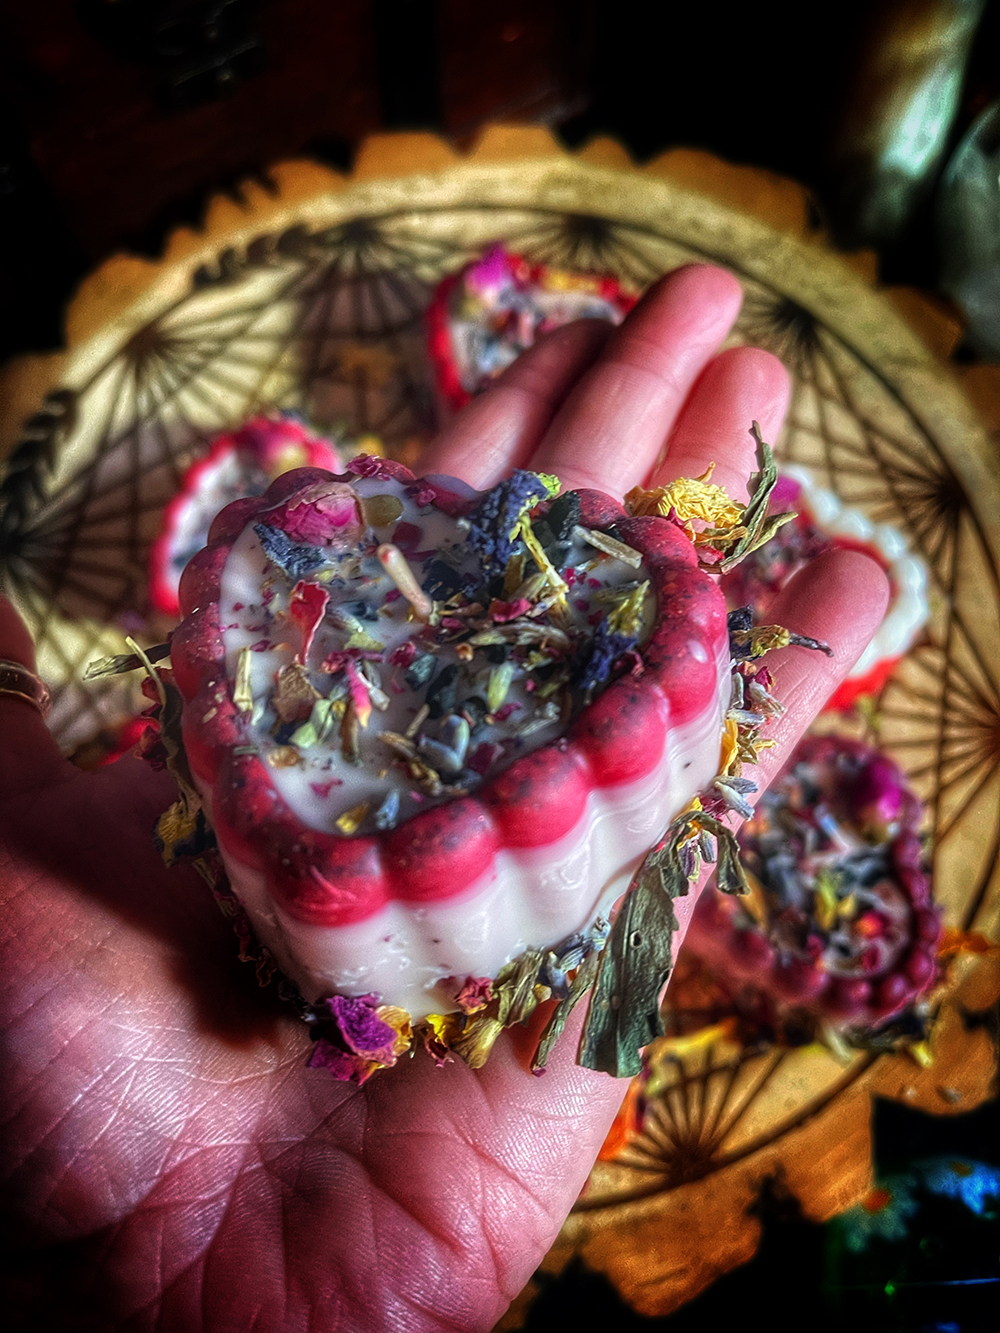 The Love Tart Votive Candle